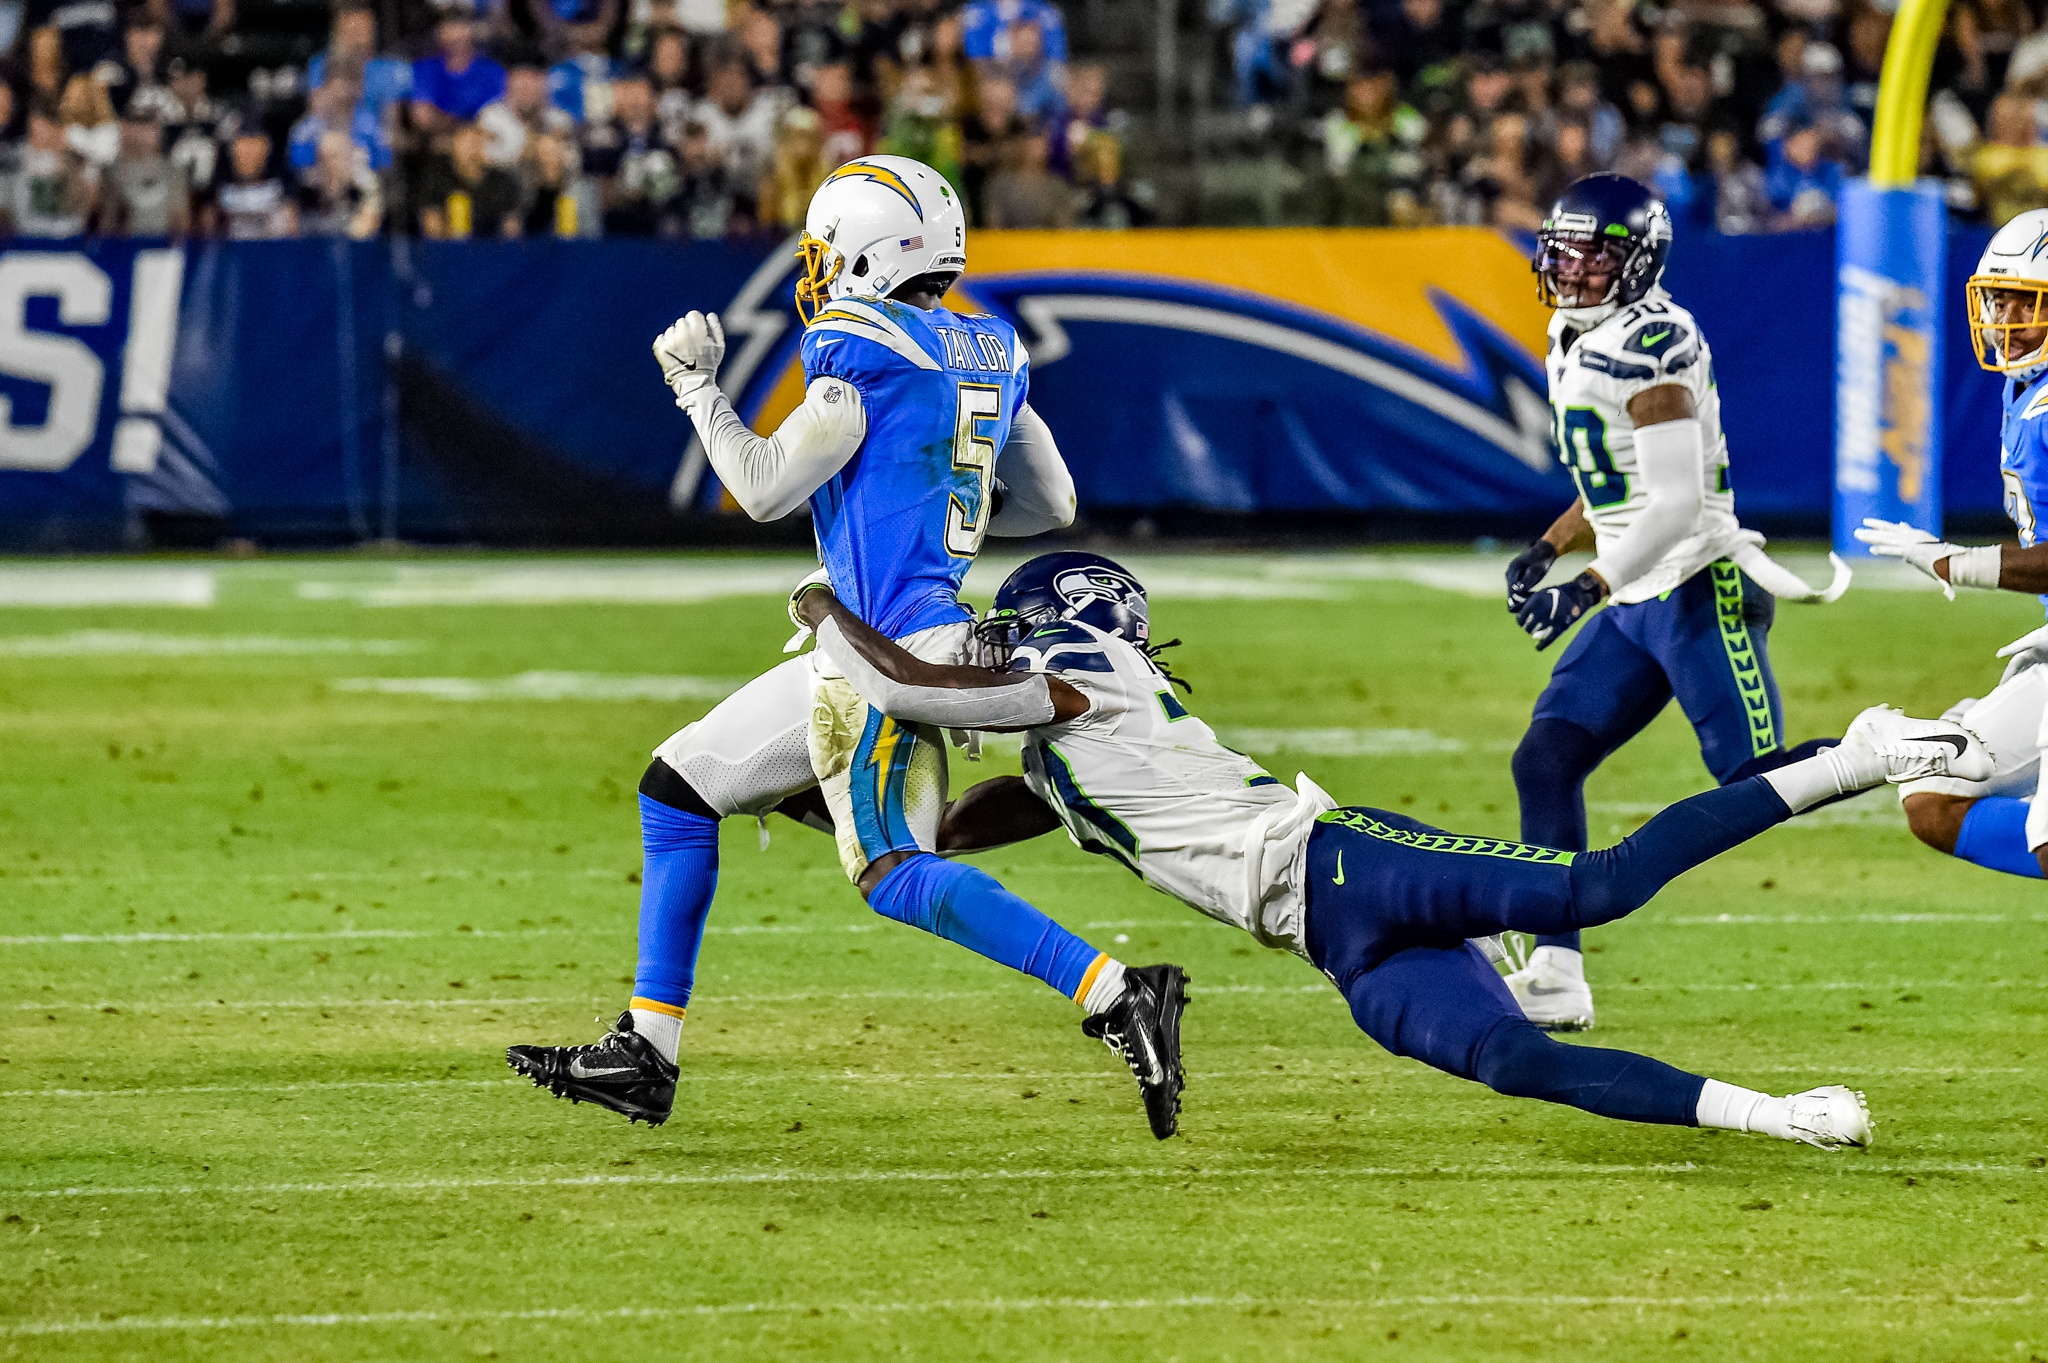 © Mark Hammond/News4usonline - Aug. 24, 2019 - Seahawks vs. Chargers - Chargers quarterback Tyrod Taylor (5) gets dragged down by a Seattle Seahawks defender.